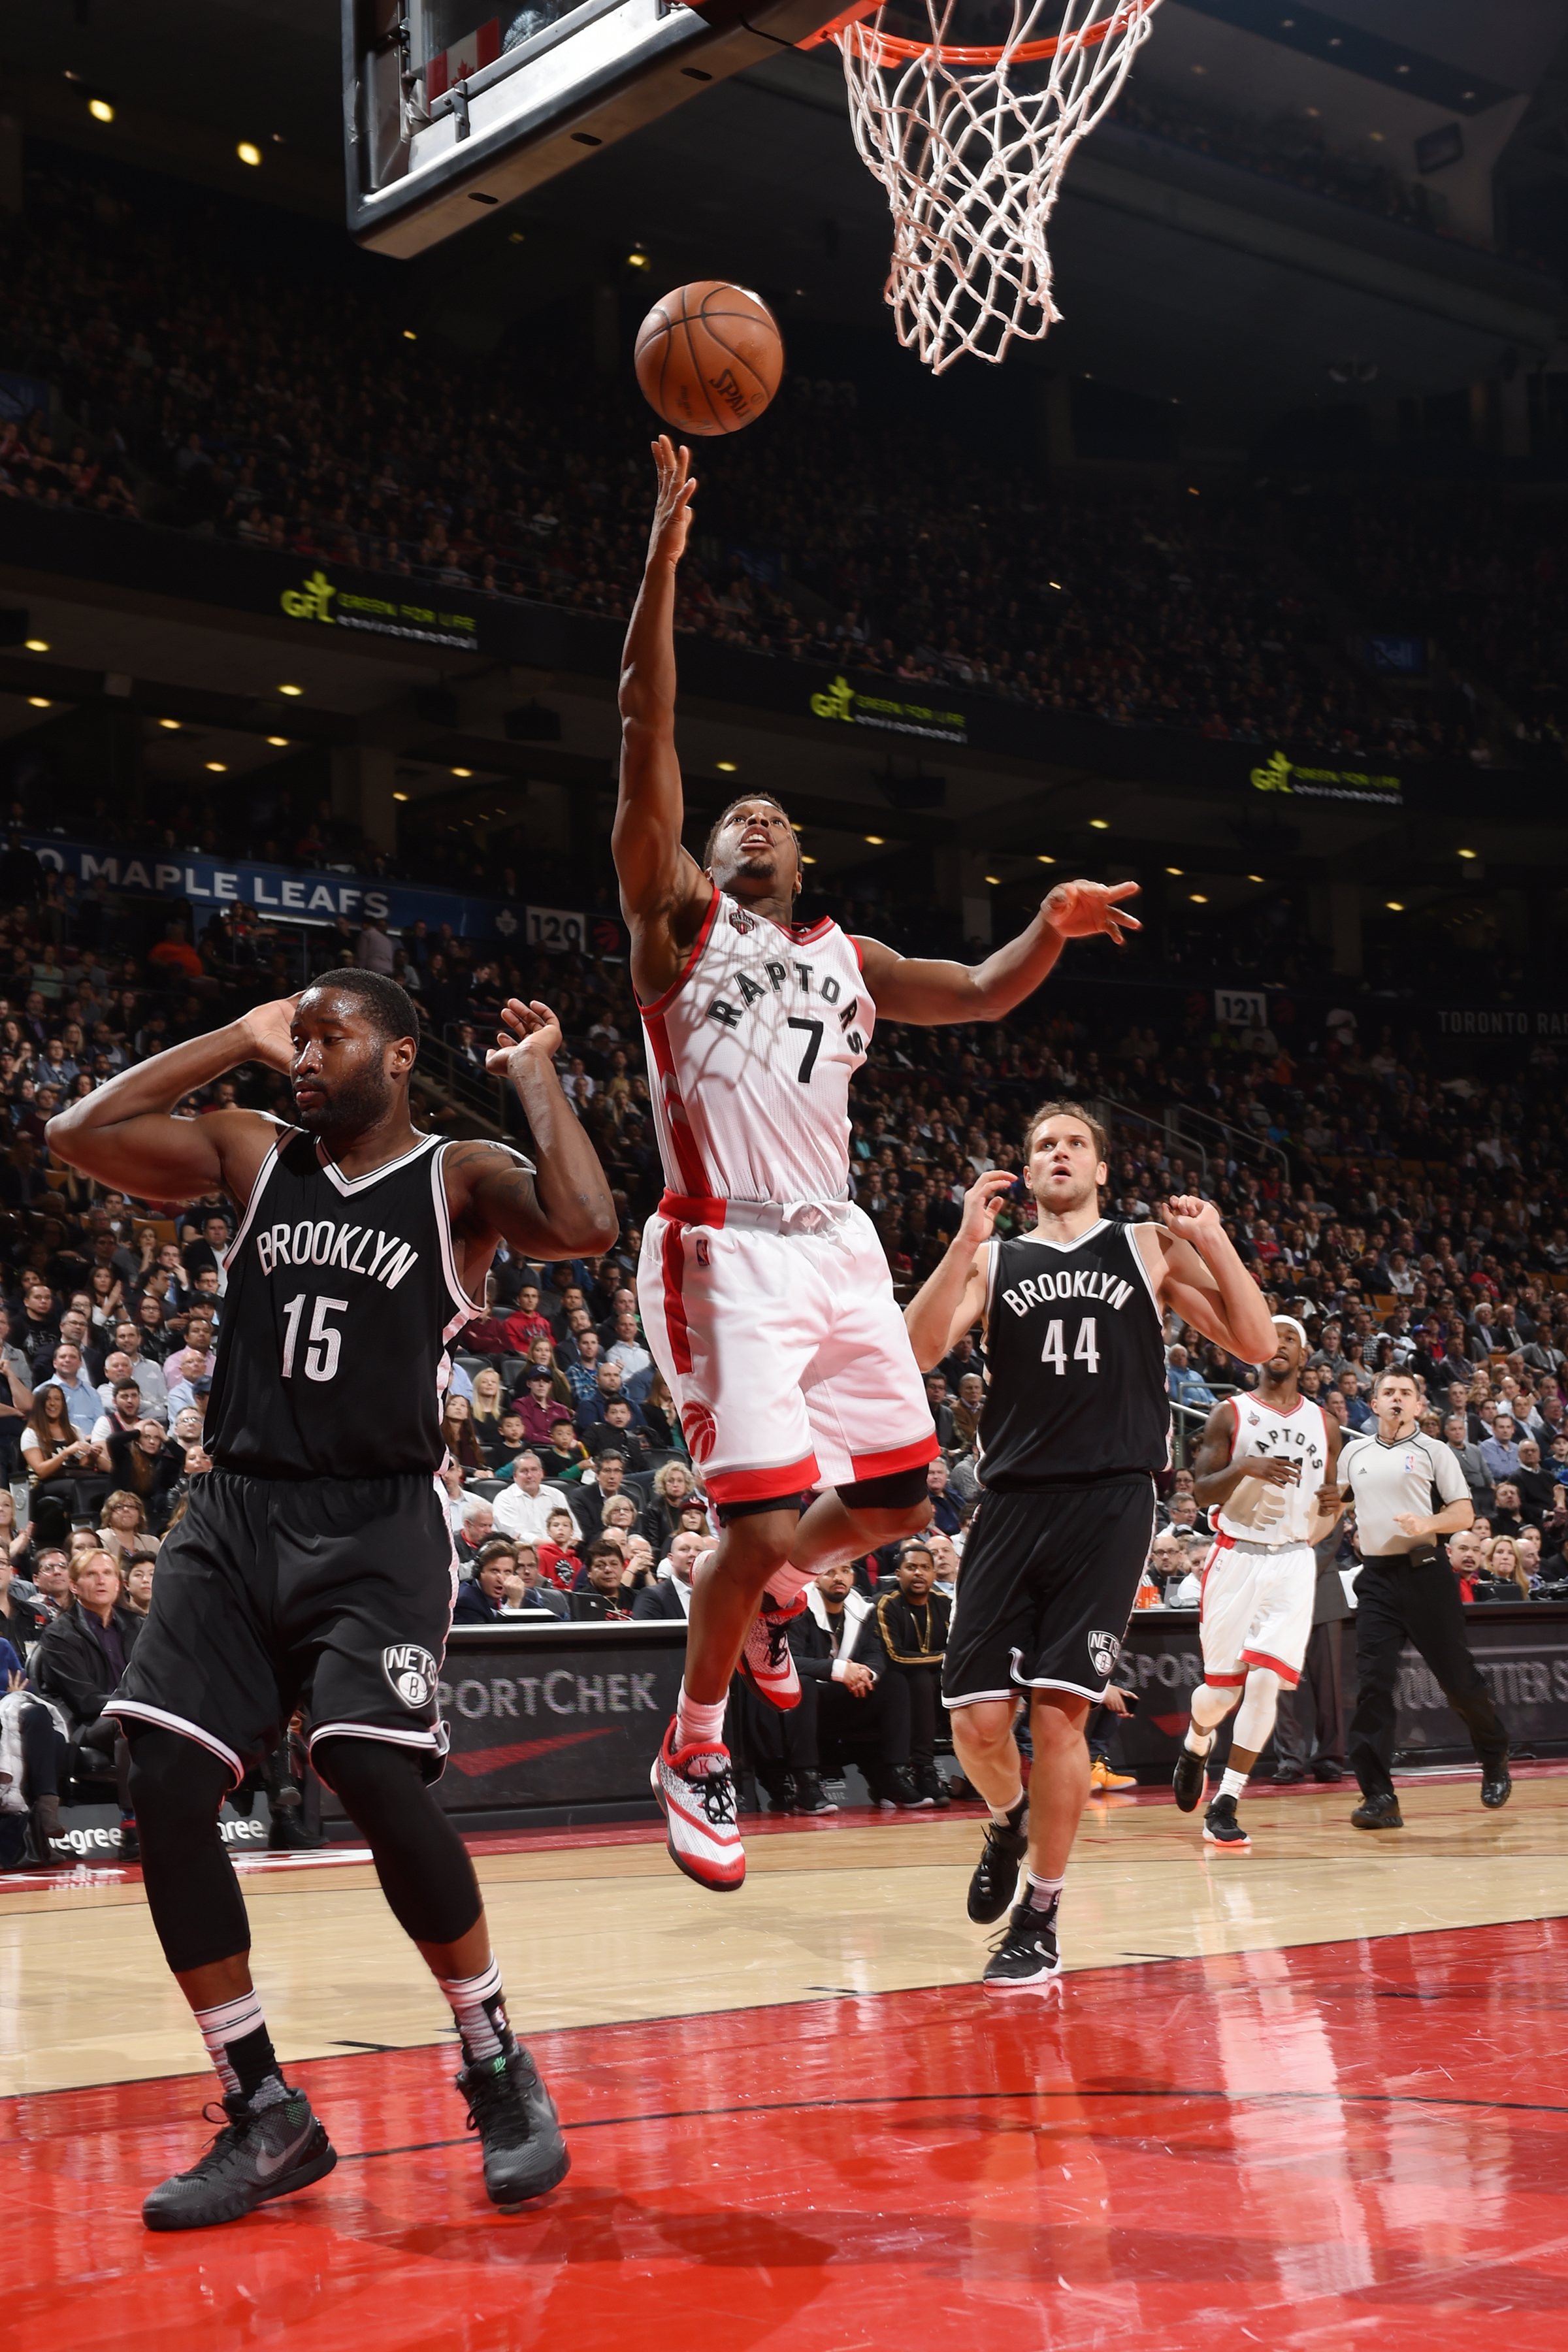 TORONTO, CANADA - MARCH 8:  Kyle Lowry #7 of the Toronto Raptors shoots the ball against the Brooklyn Nets on March 8, 2016 at the Air Canada Centre in Toronto, Ontario, Canada.  (Photo by Ron Turenne/NBAE via Getty Images)